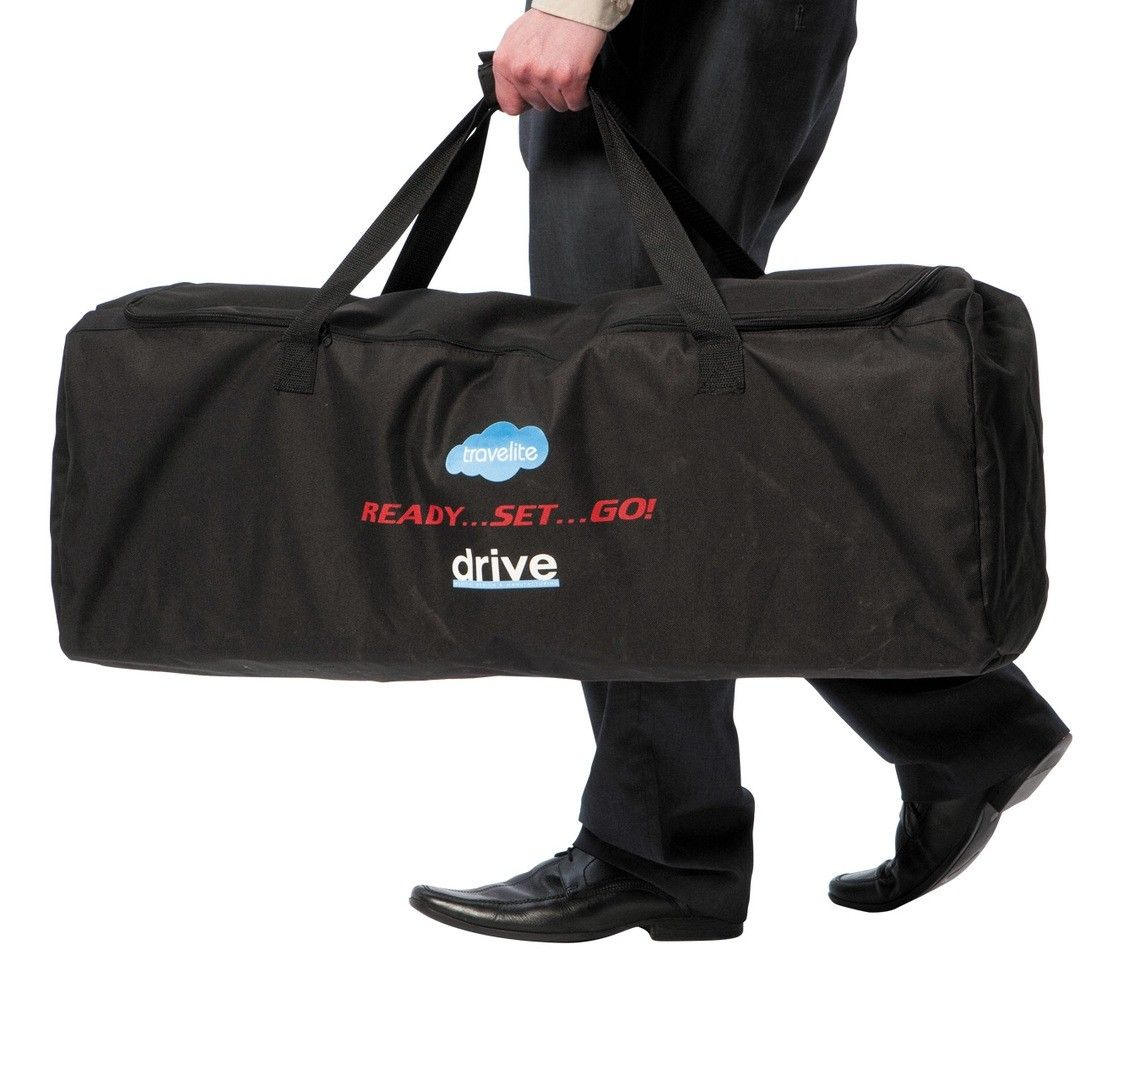 TraveLite aluminium transport chair folded and in the bag